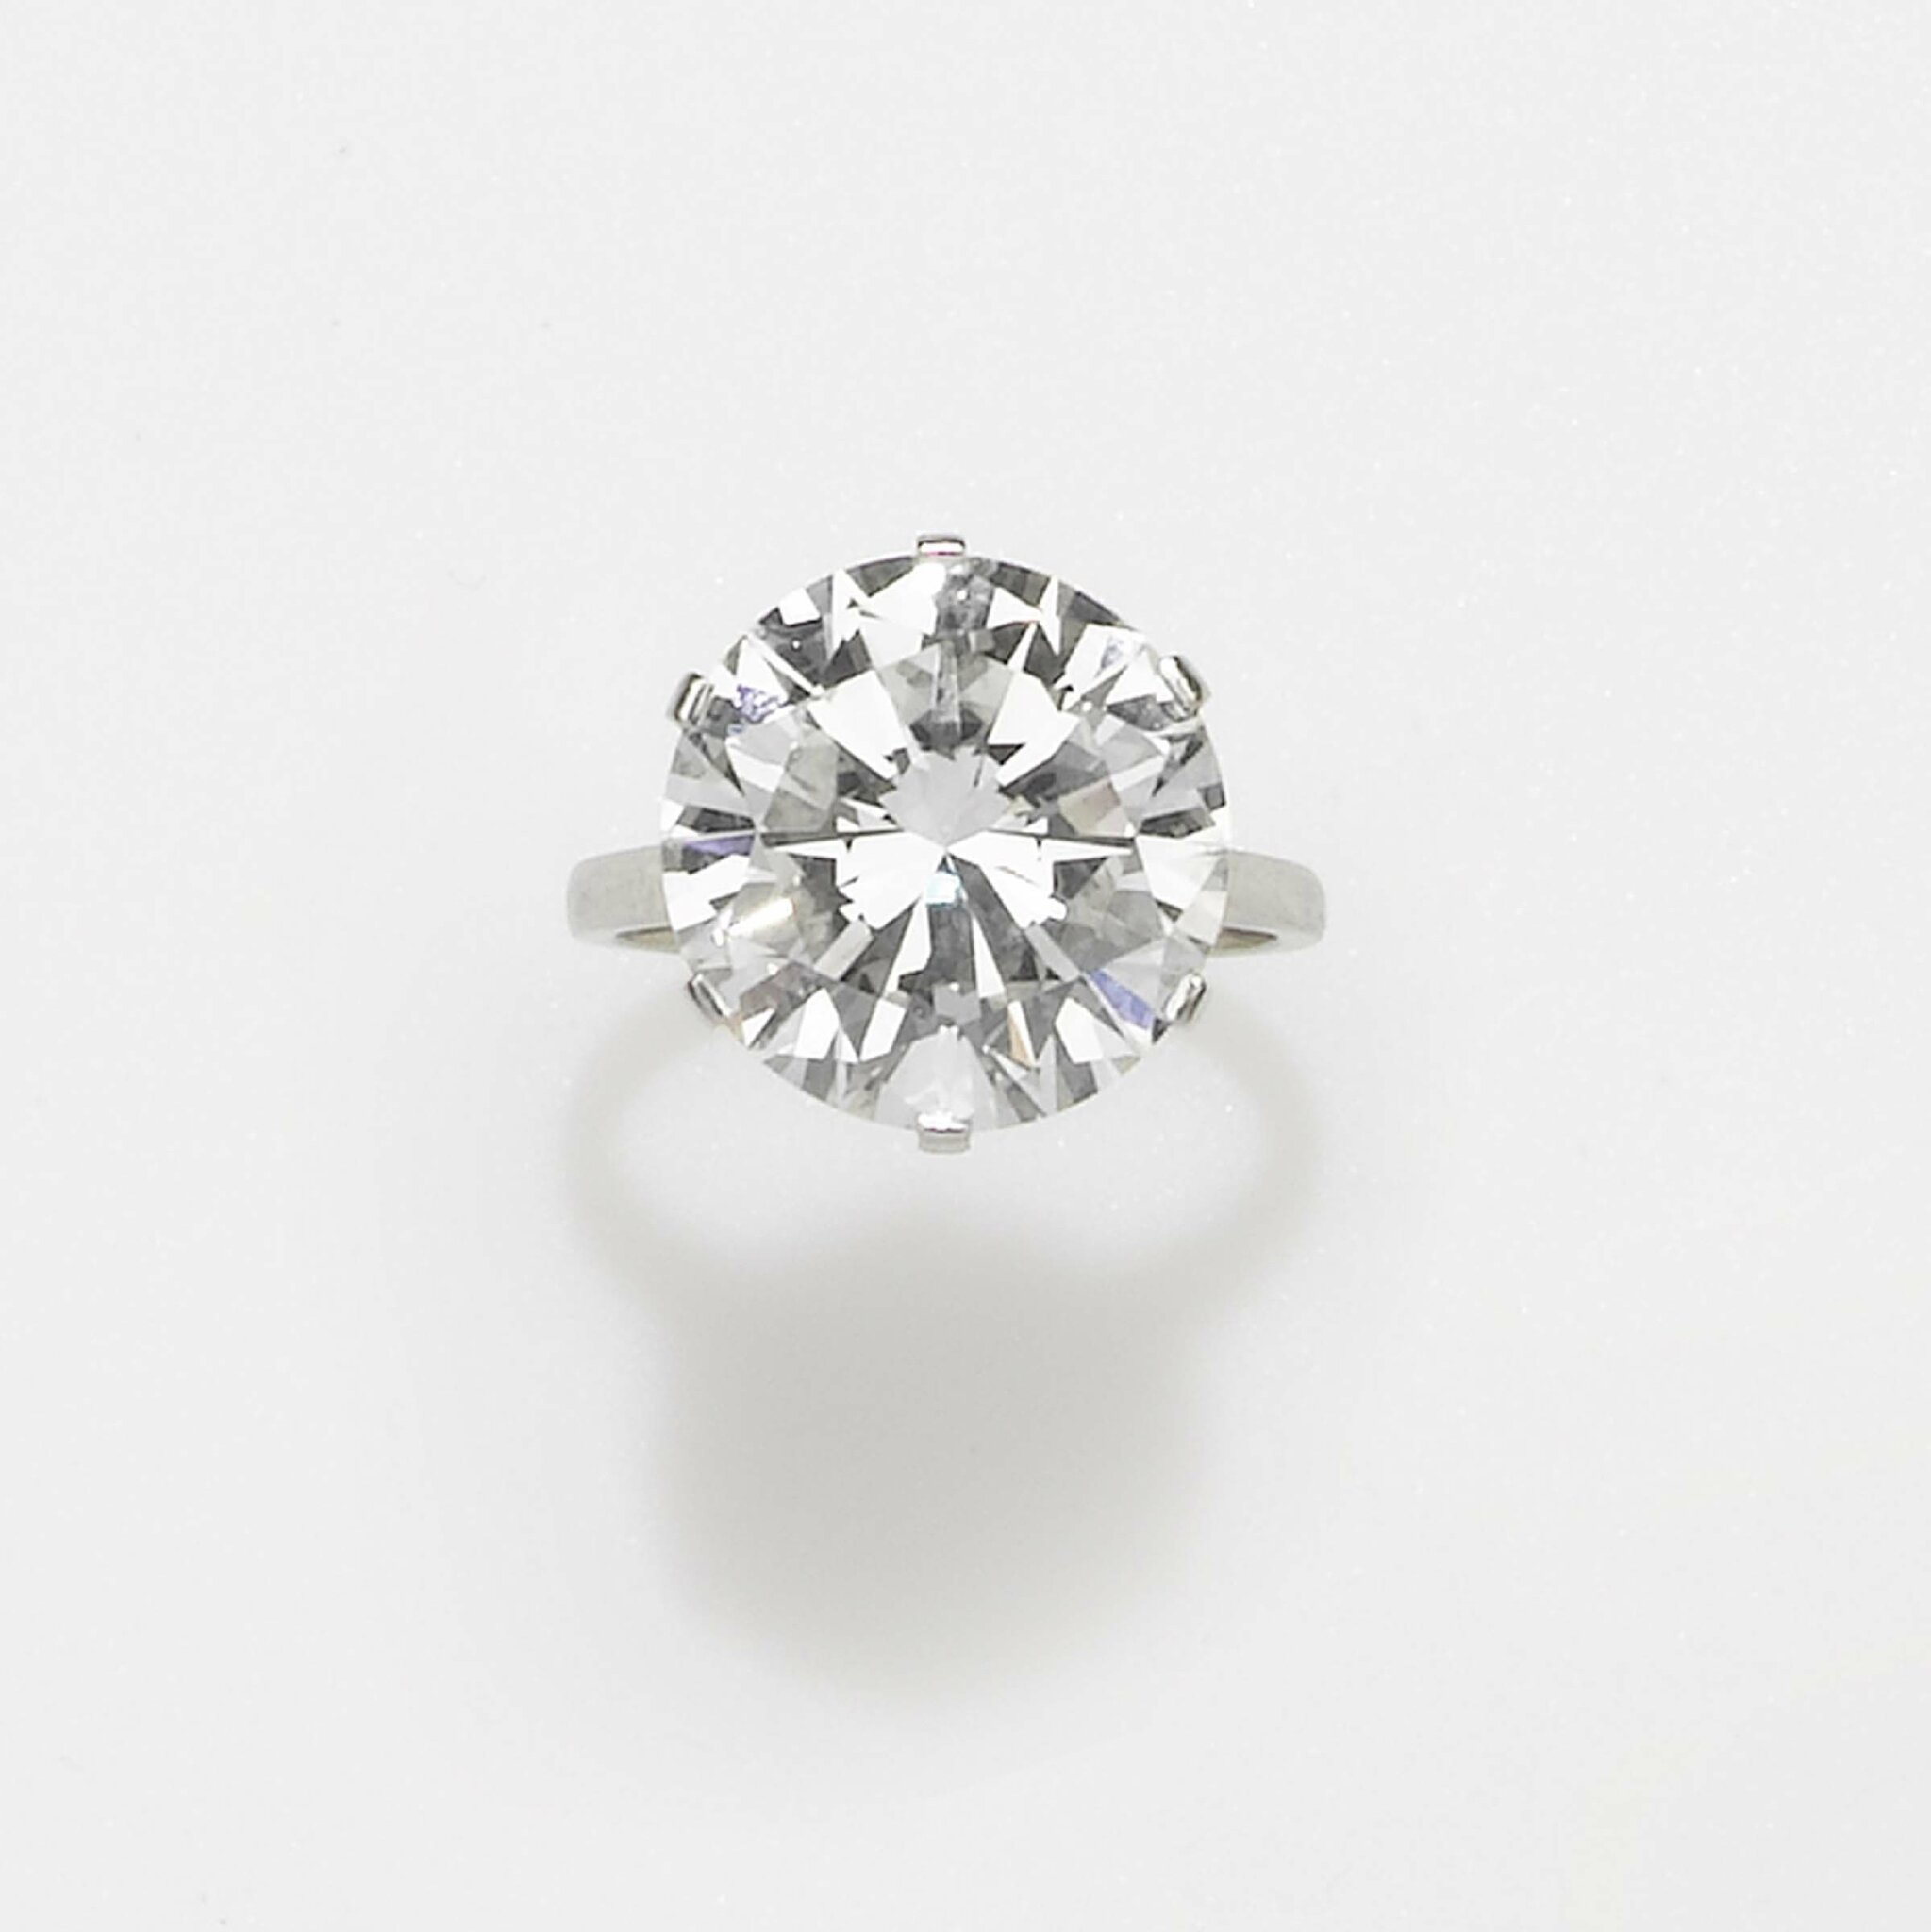 A brilliant cut diamond ring weighing 10,04 carats